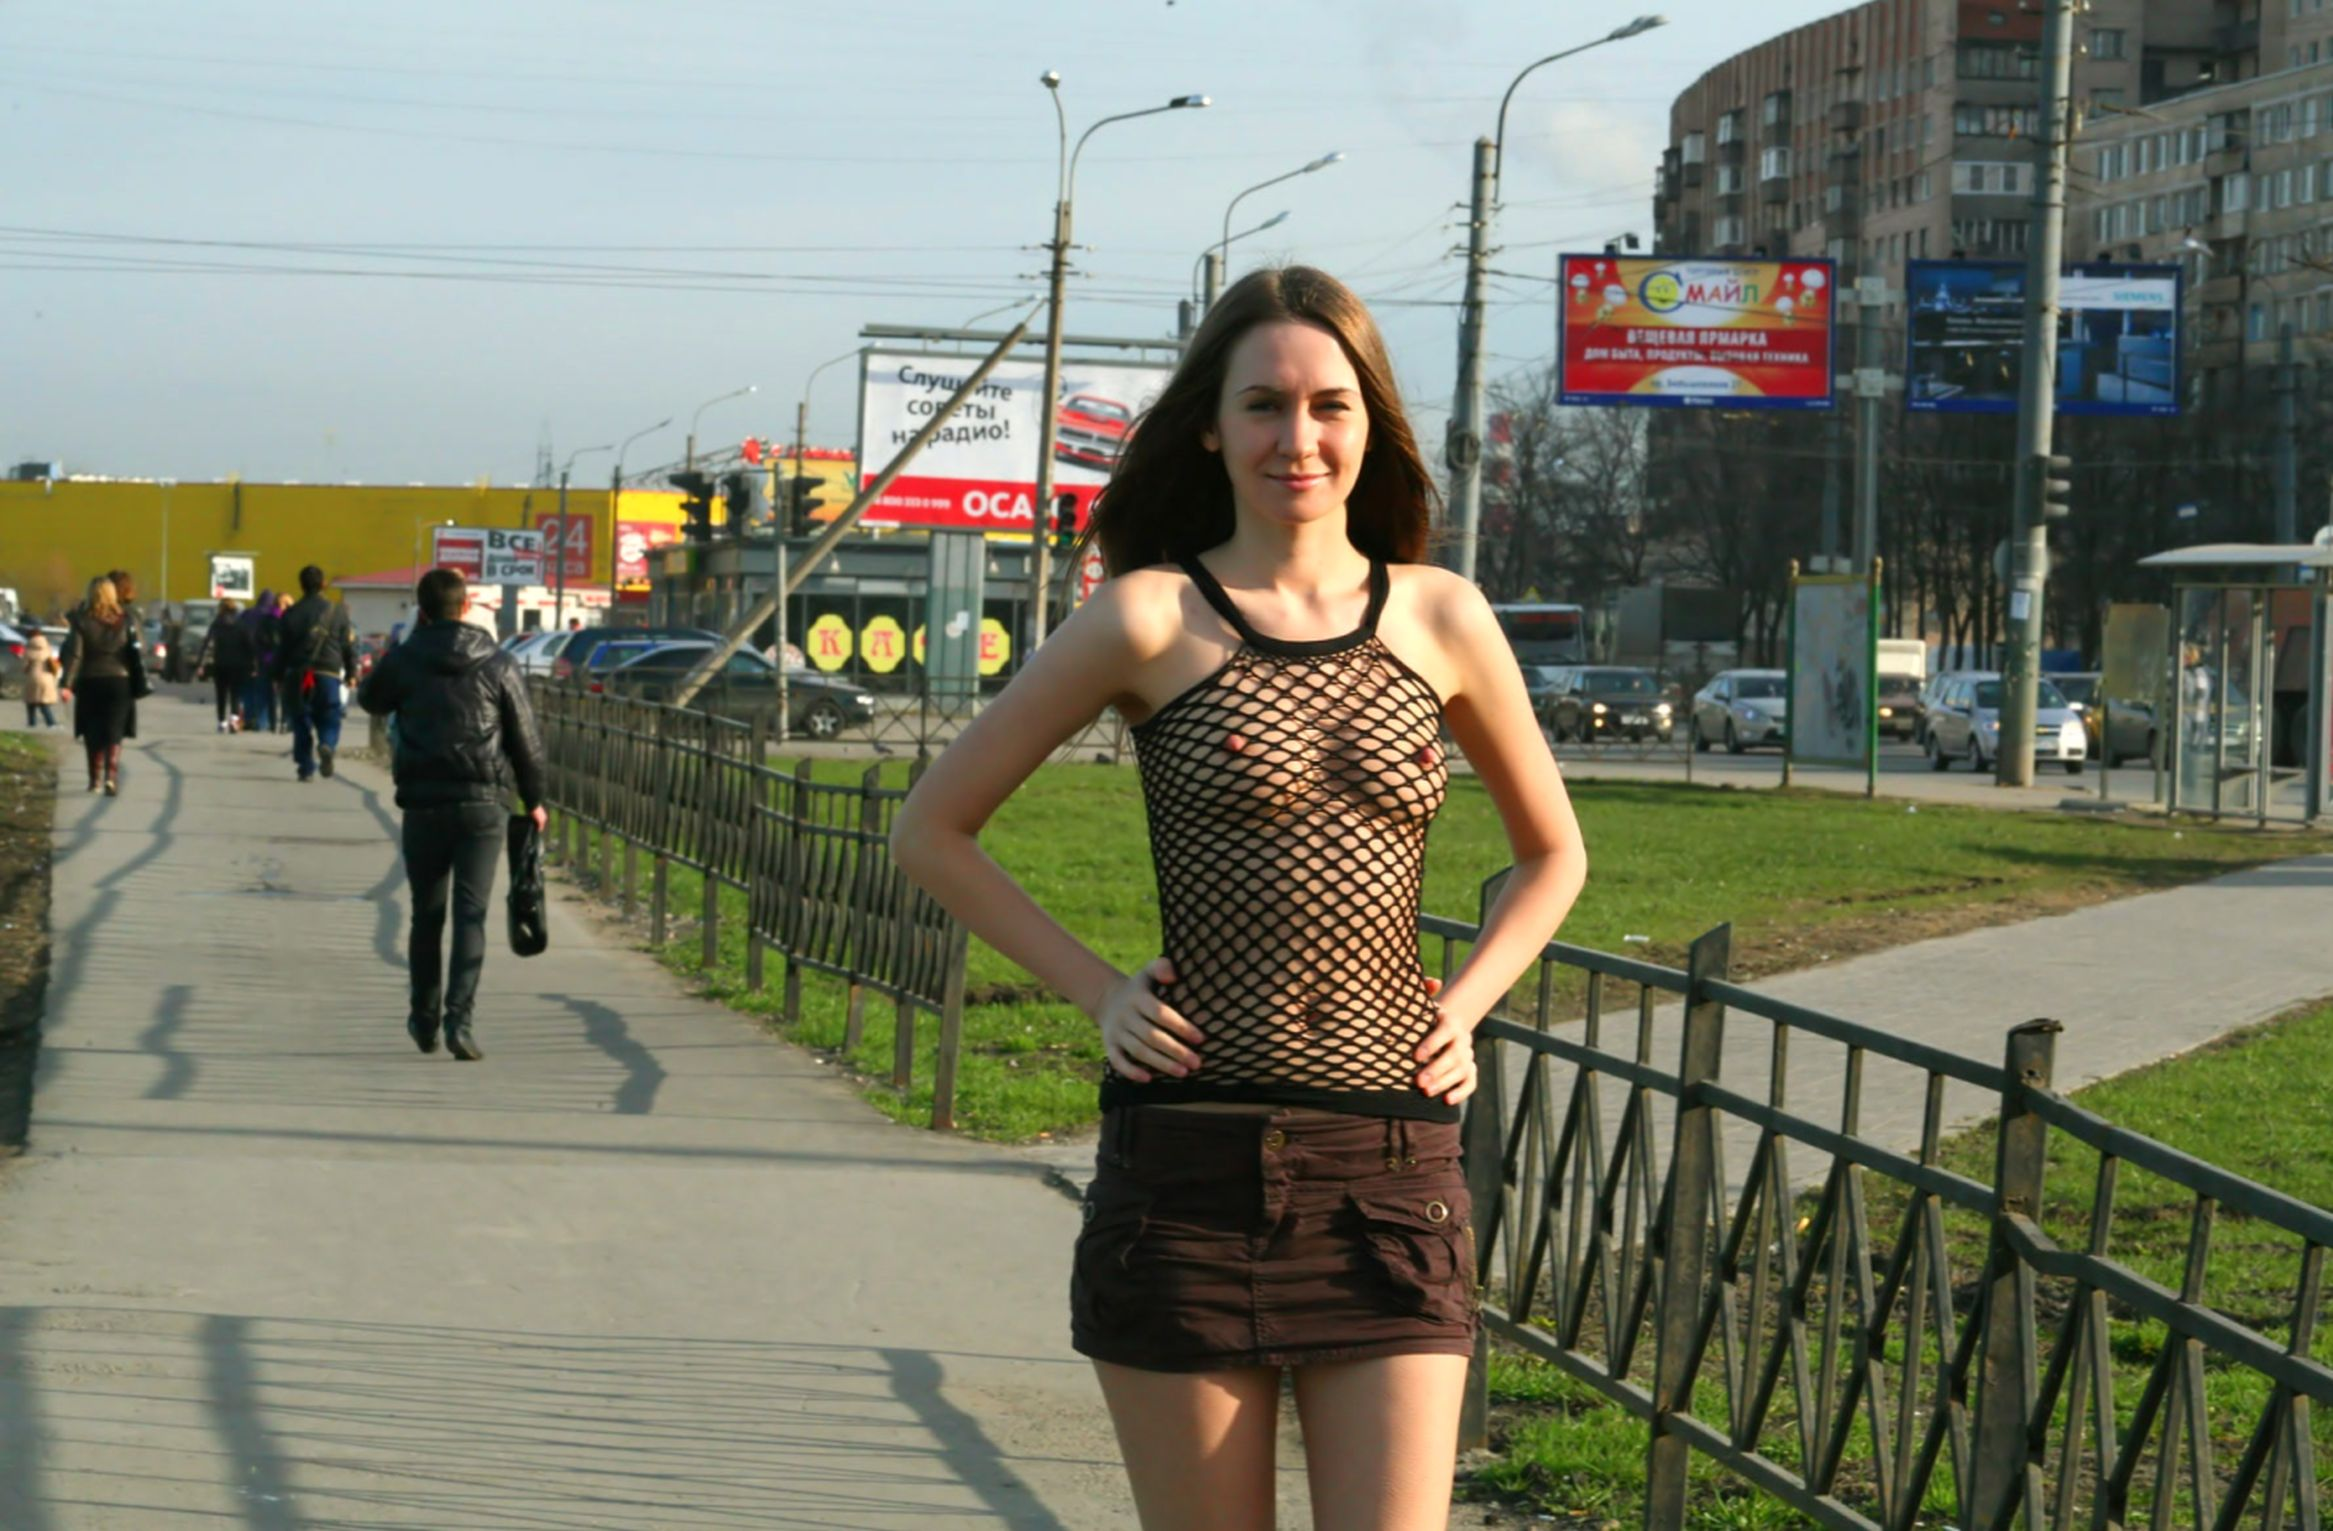 Crazy Russian Beauty In A Transparent Top With Nipples Standing In A -6915